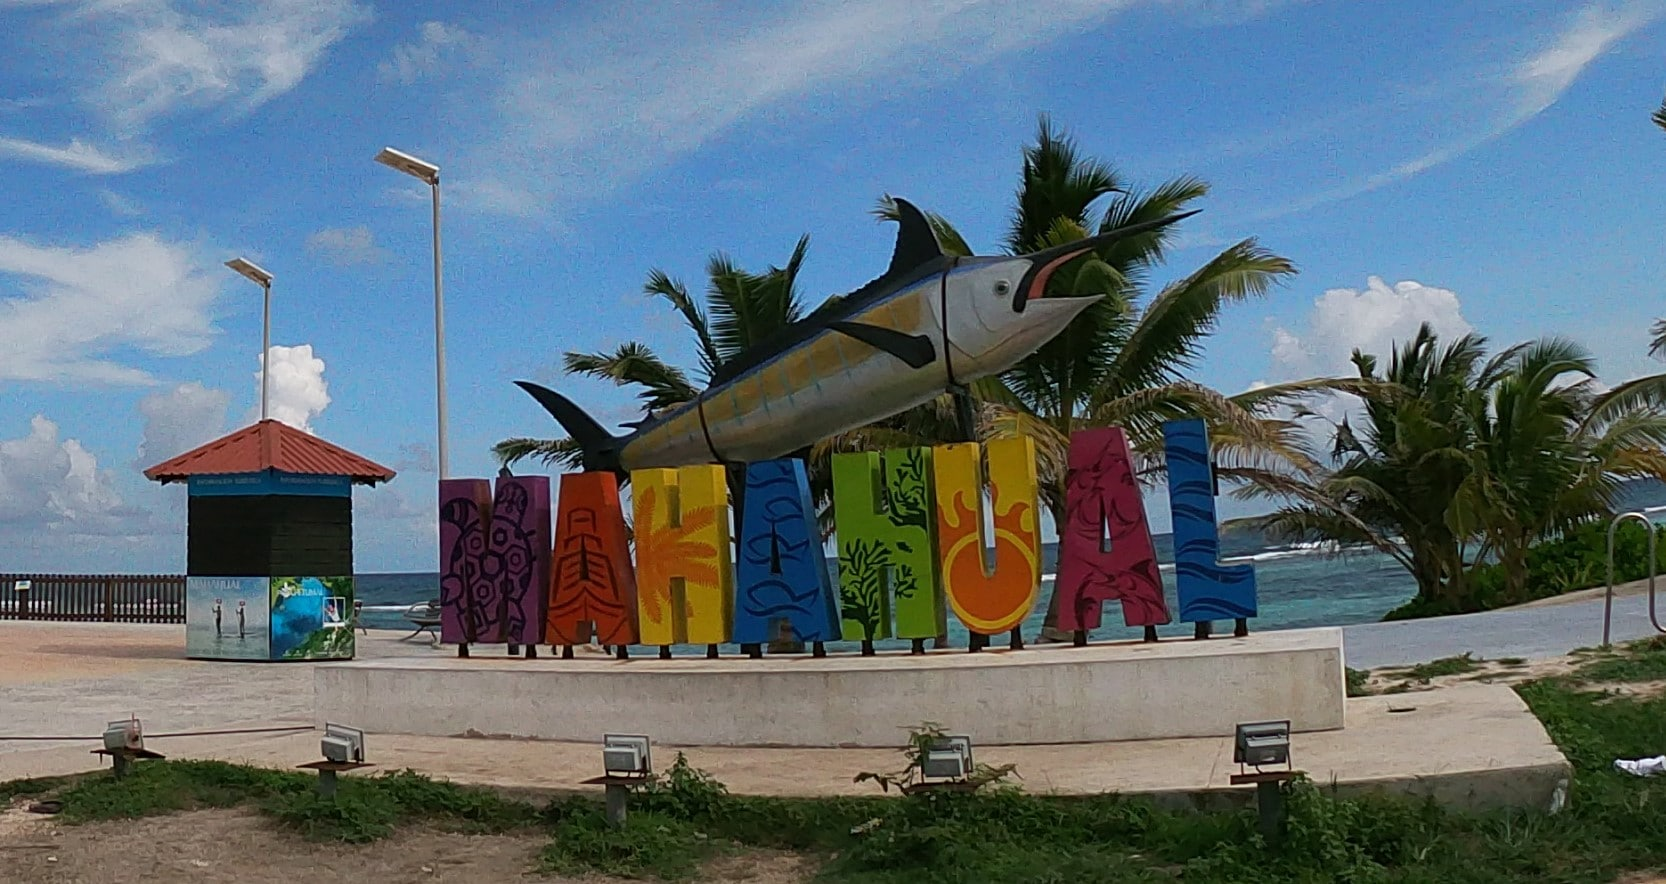 Excursions Costa Maya: The fishing village of Mahahual and amazing Mayan ruins